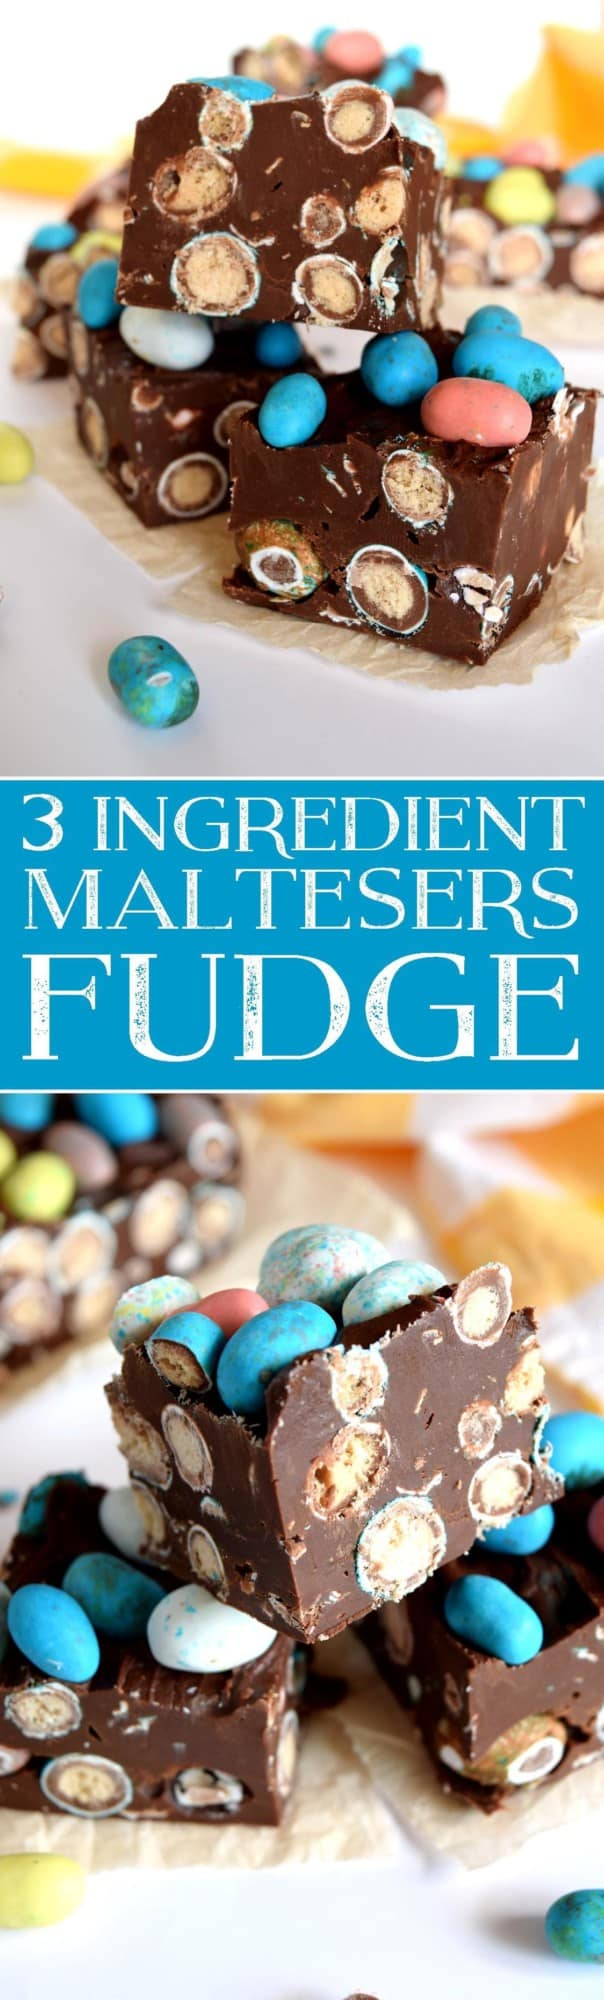 3 Ingredient Maltesers Fudge